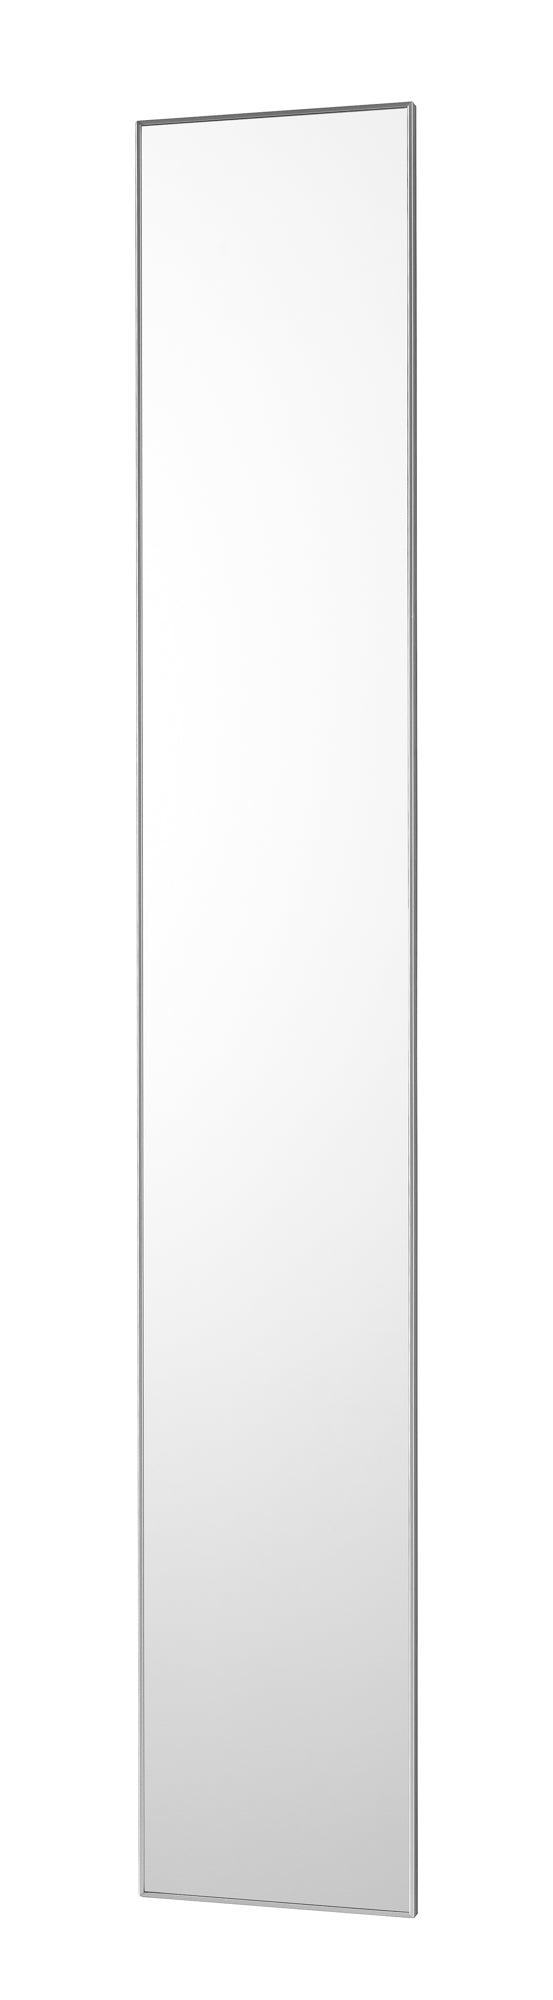 NO FRAME IV Mirror by Antonia Astori for Driade - DUPLEX DESIGN